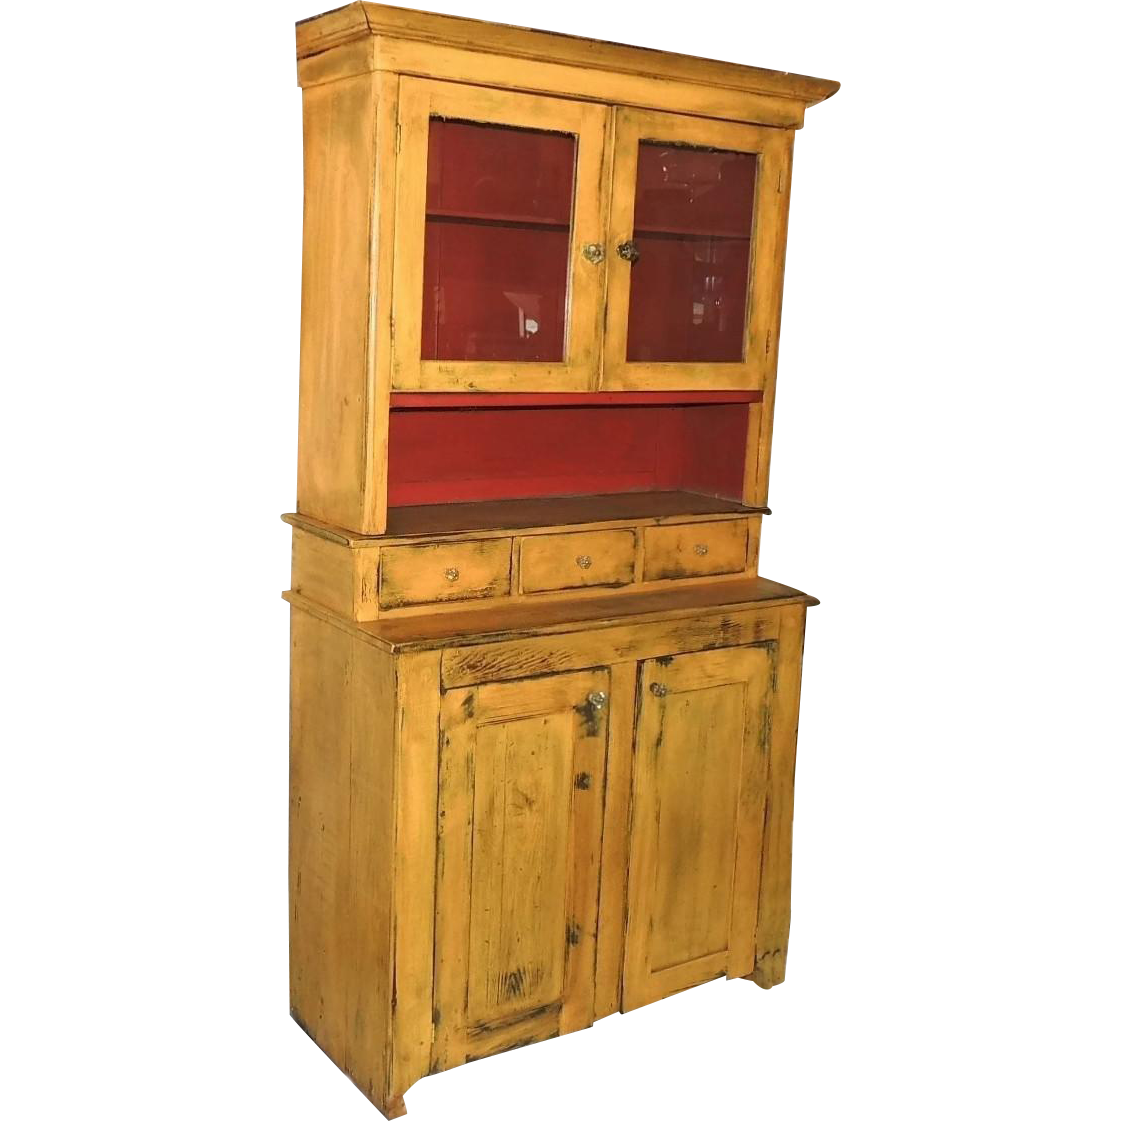 Painted Stepback Cupboard 2 Piece Hutch Antique Pine - Painted Stepback Cupboard 2 Piece Hutch Antique Pine From Premier